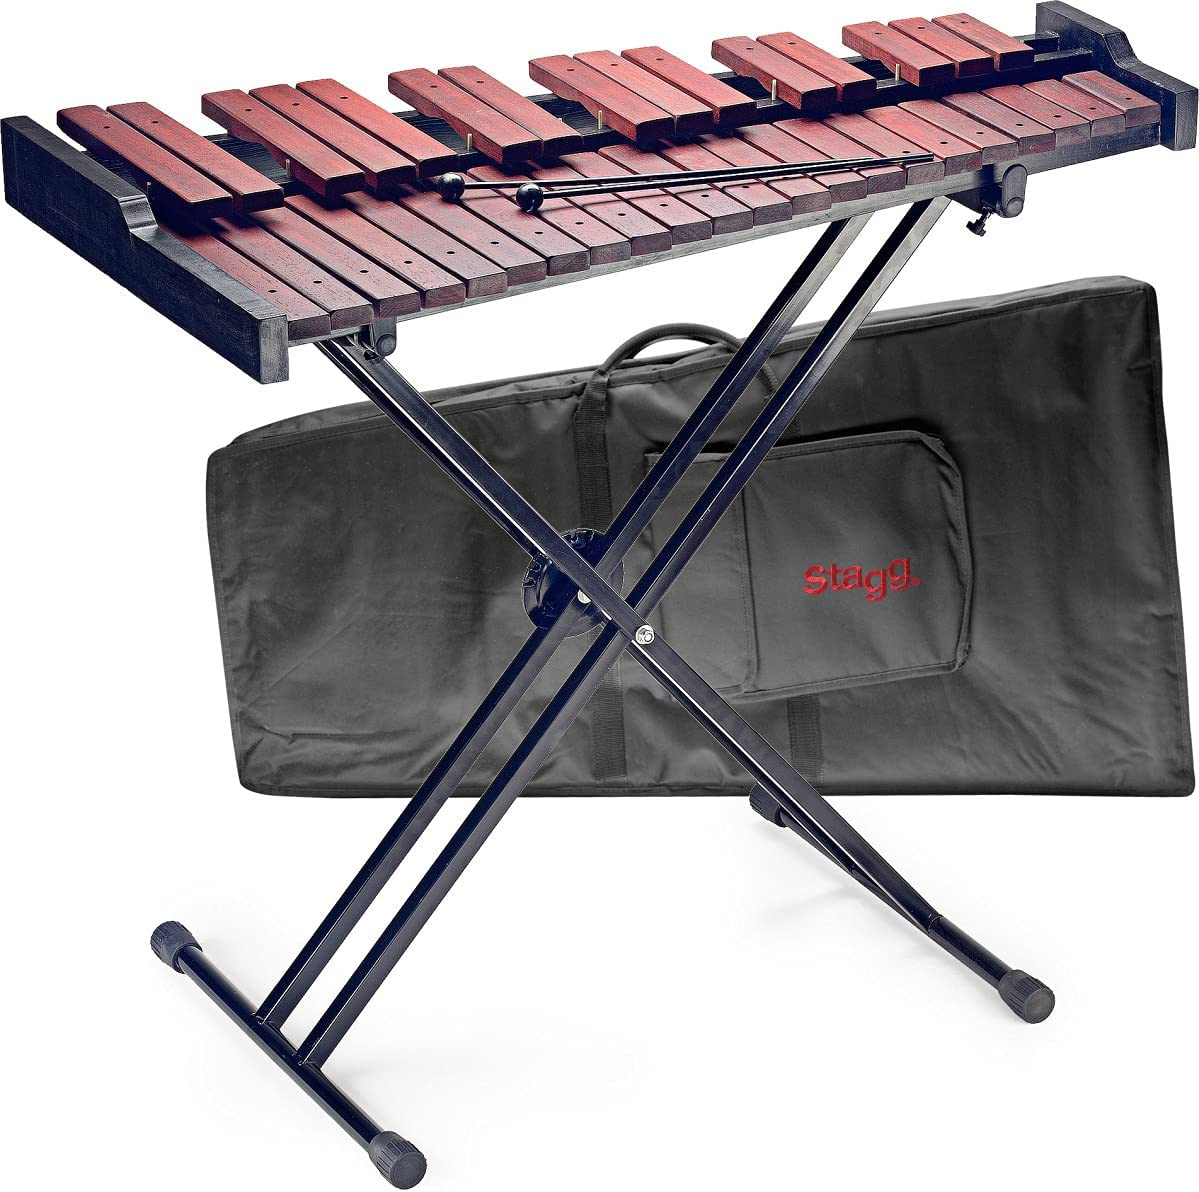 Stagg Xylophone Max 88% Limited time cheap sale OFF Padouk Wood 37 P21 Xylo-Set